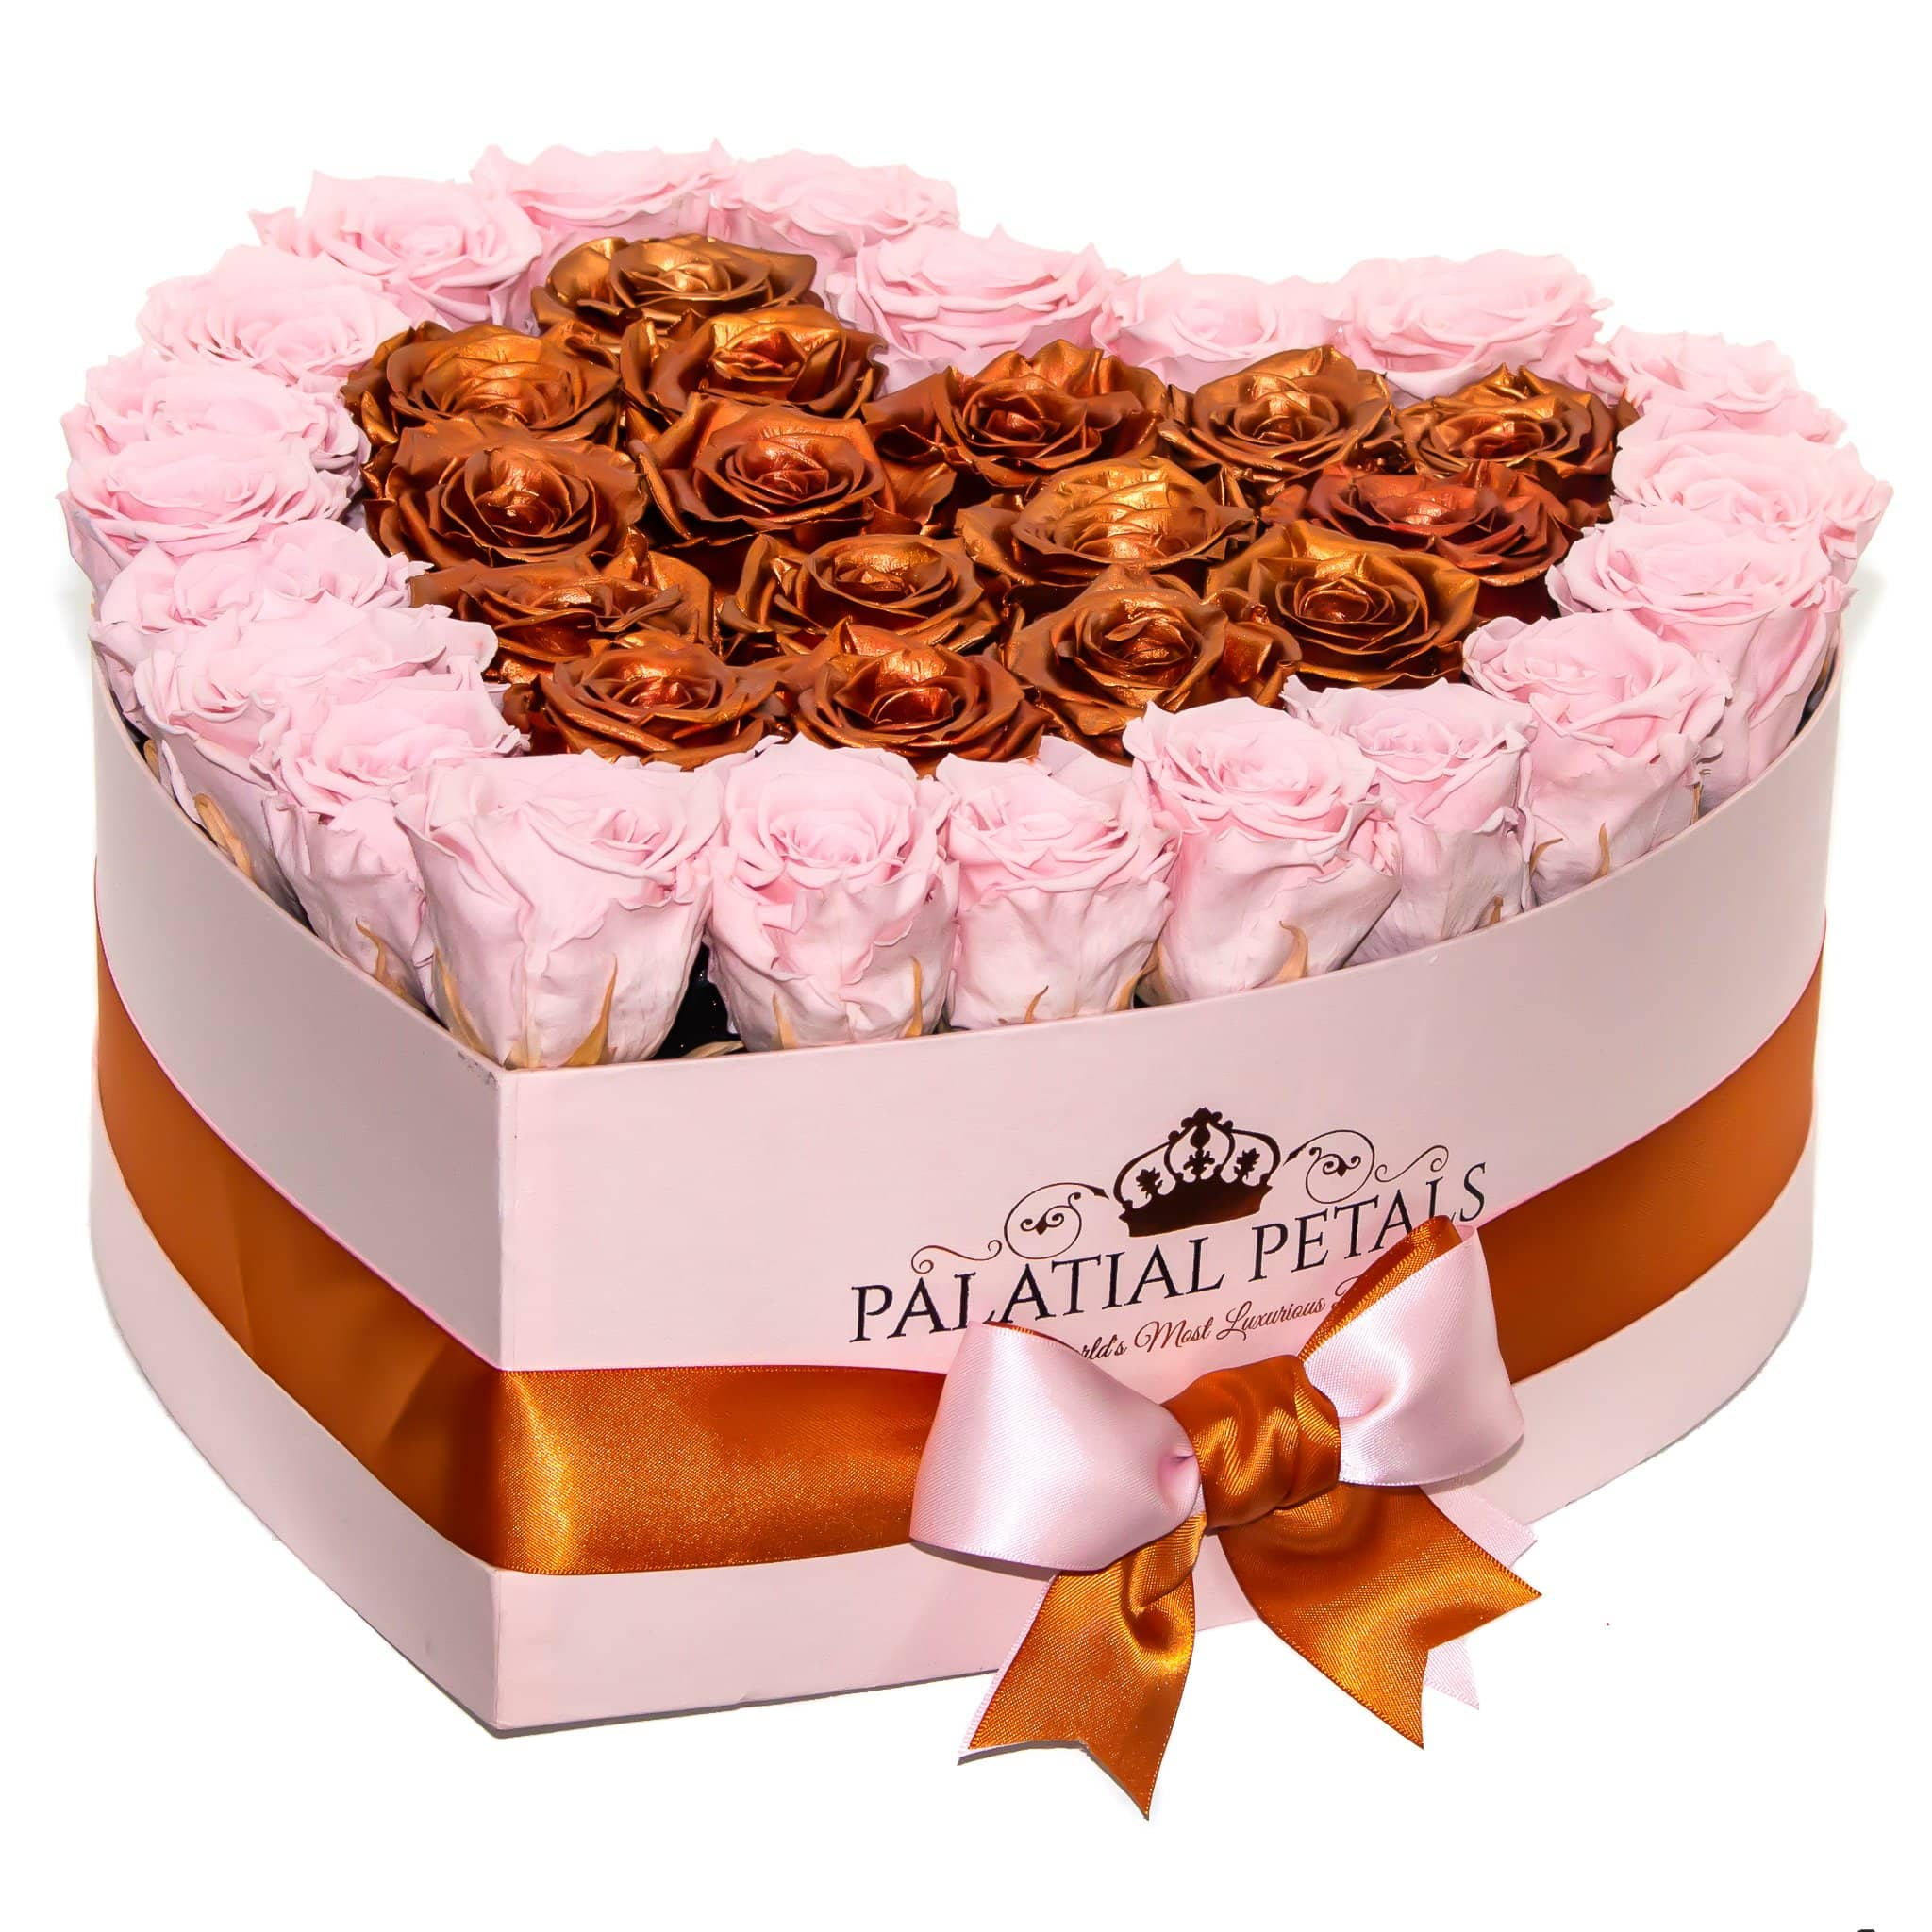 Rose Gold & Bridal Pink Preserved Roses That Last A Year - Love Heart Rose Box - Palatial Petals